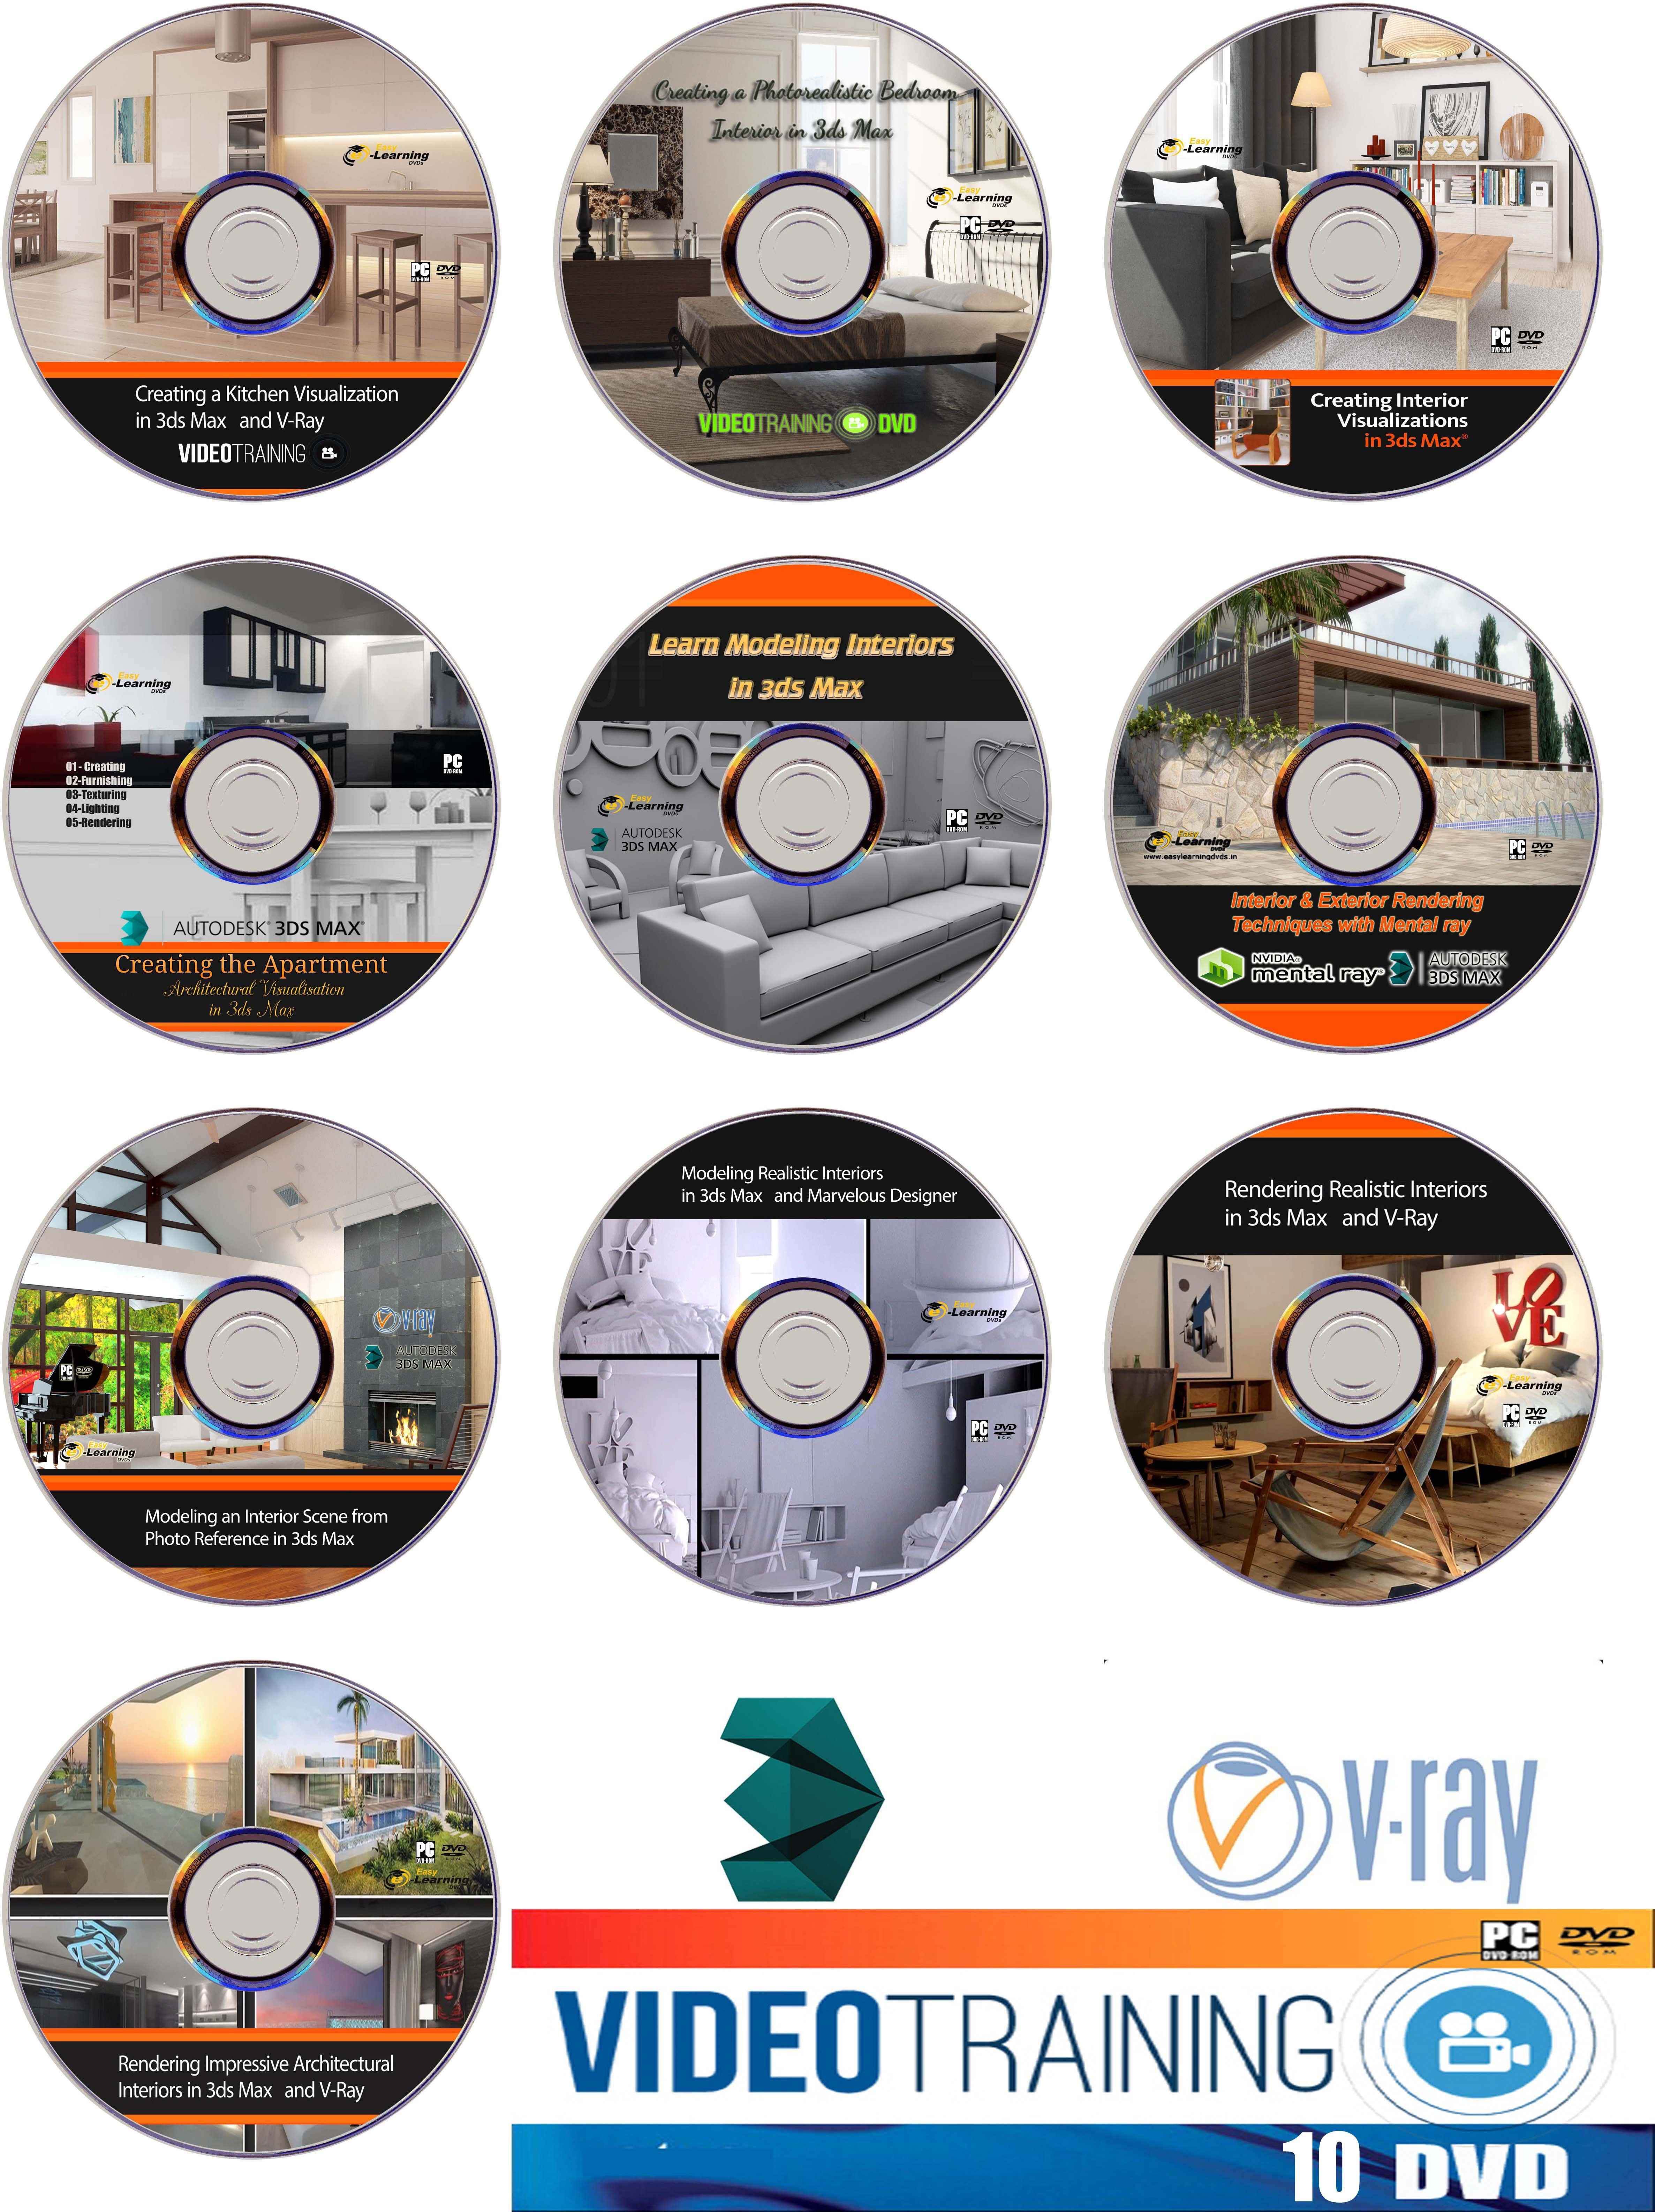 Easy Learning Designing Interiors in 3ds Max Video Training 12 Courses Bundle Pack on 10 DVDs(DVD)